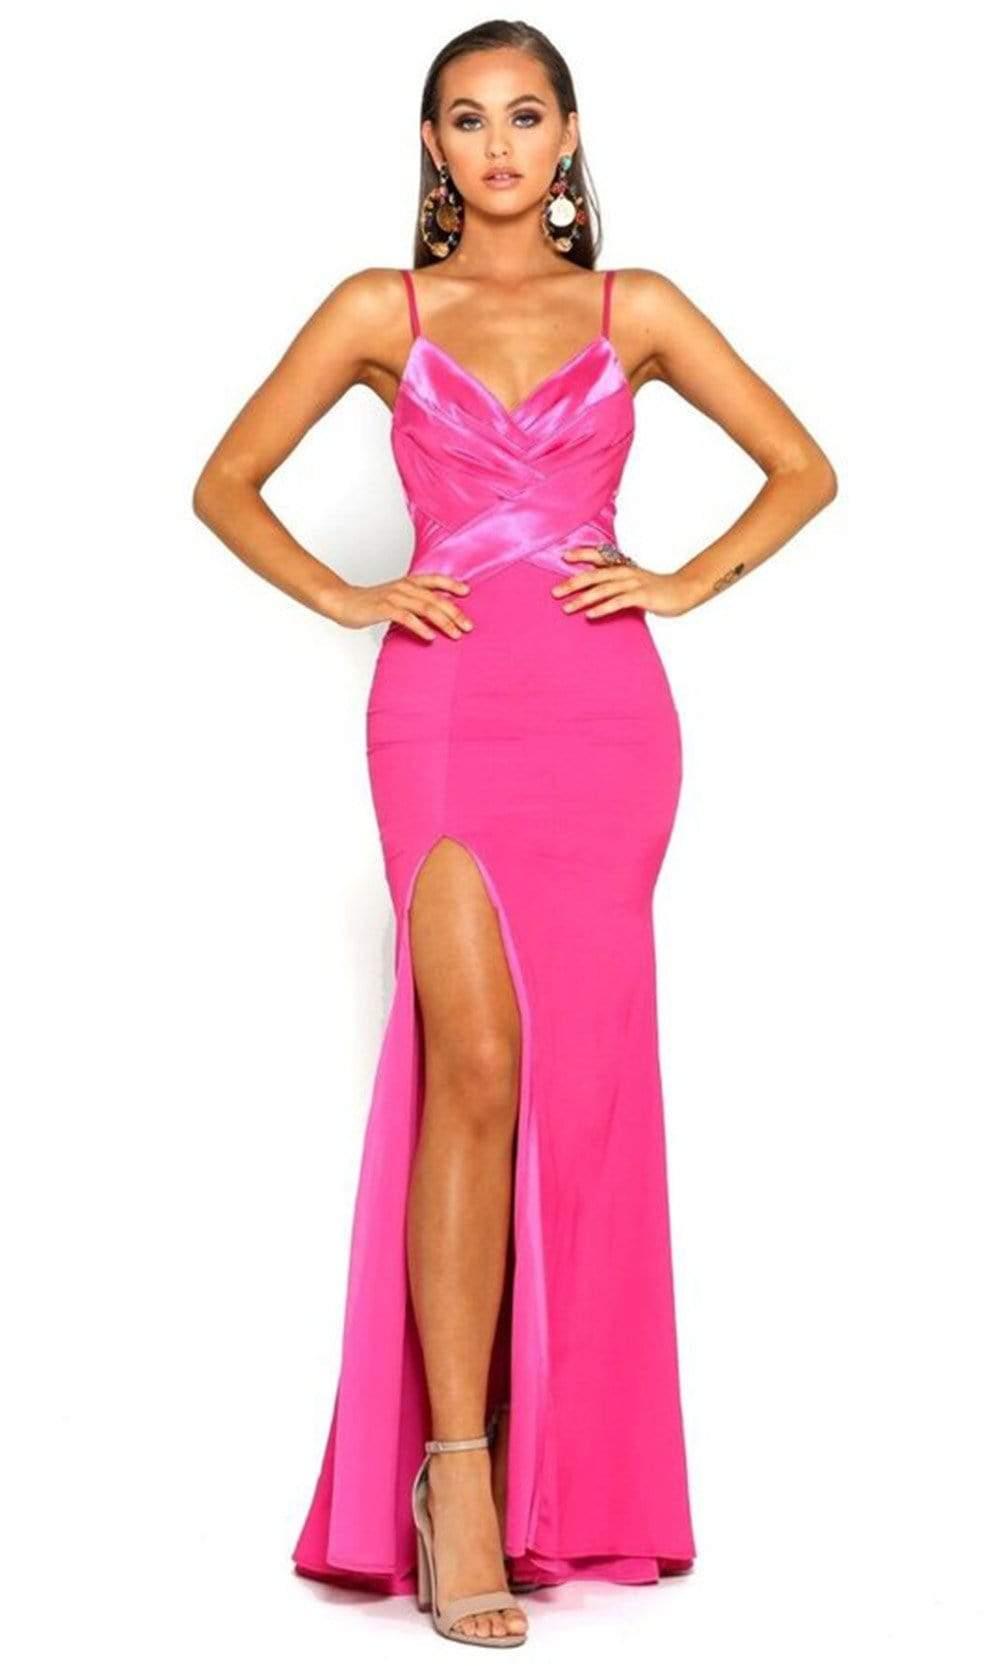 Portia and Scarlett - PS1912 V Neck High Slit Long Train Mermaid Gown from Portia and Scarlett